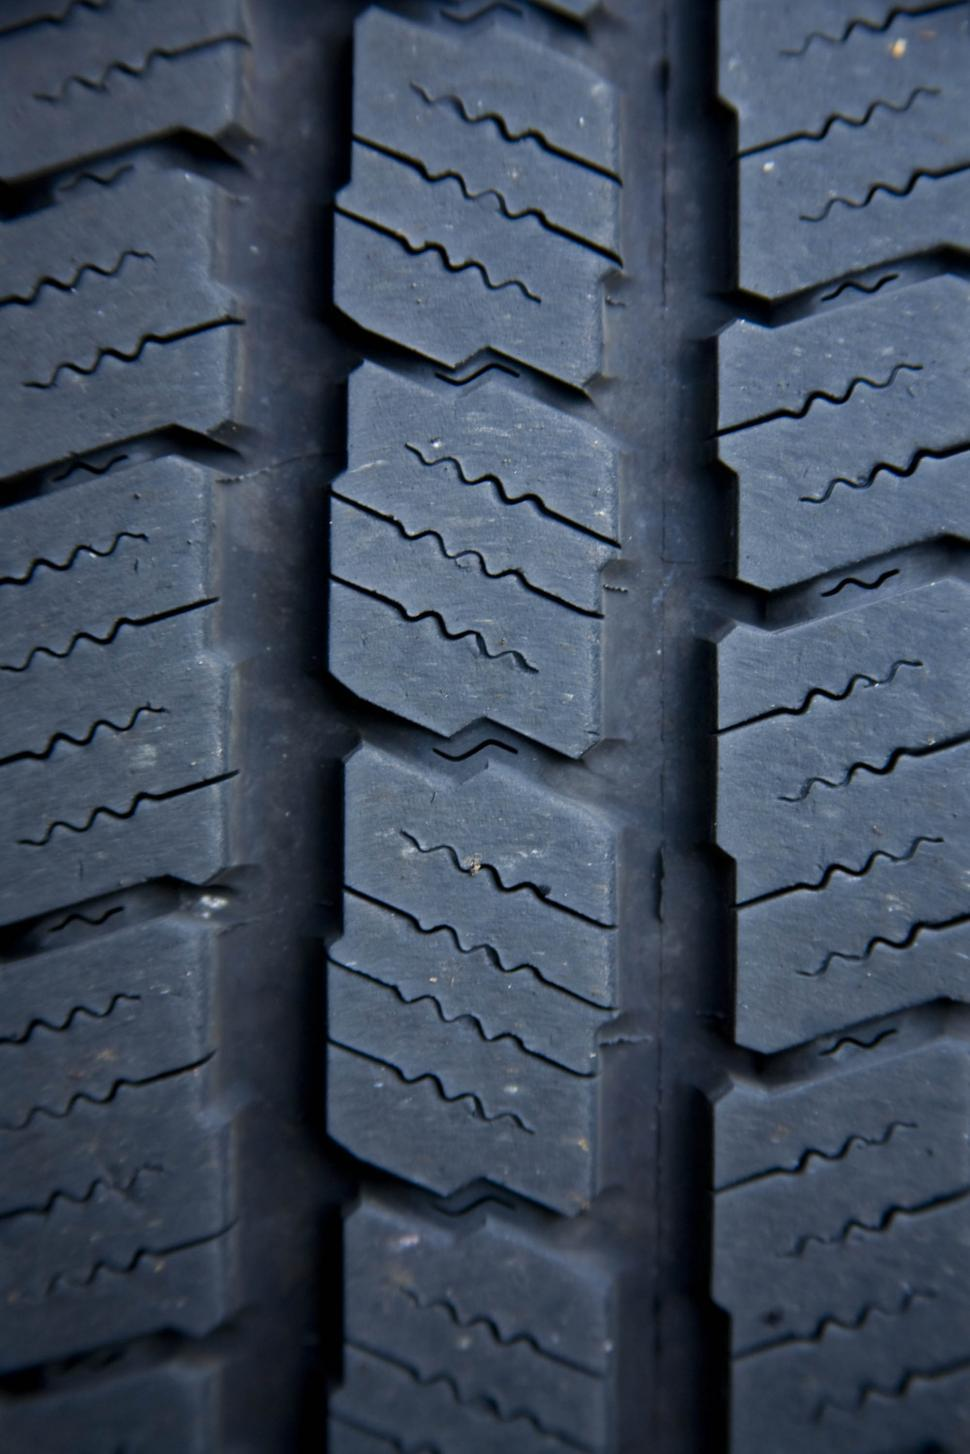 Download Free Stock Photo of Black rubber tire